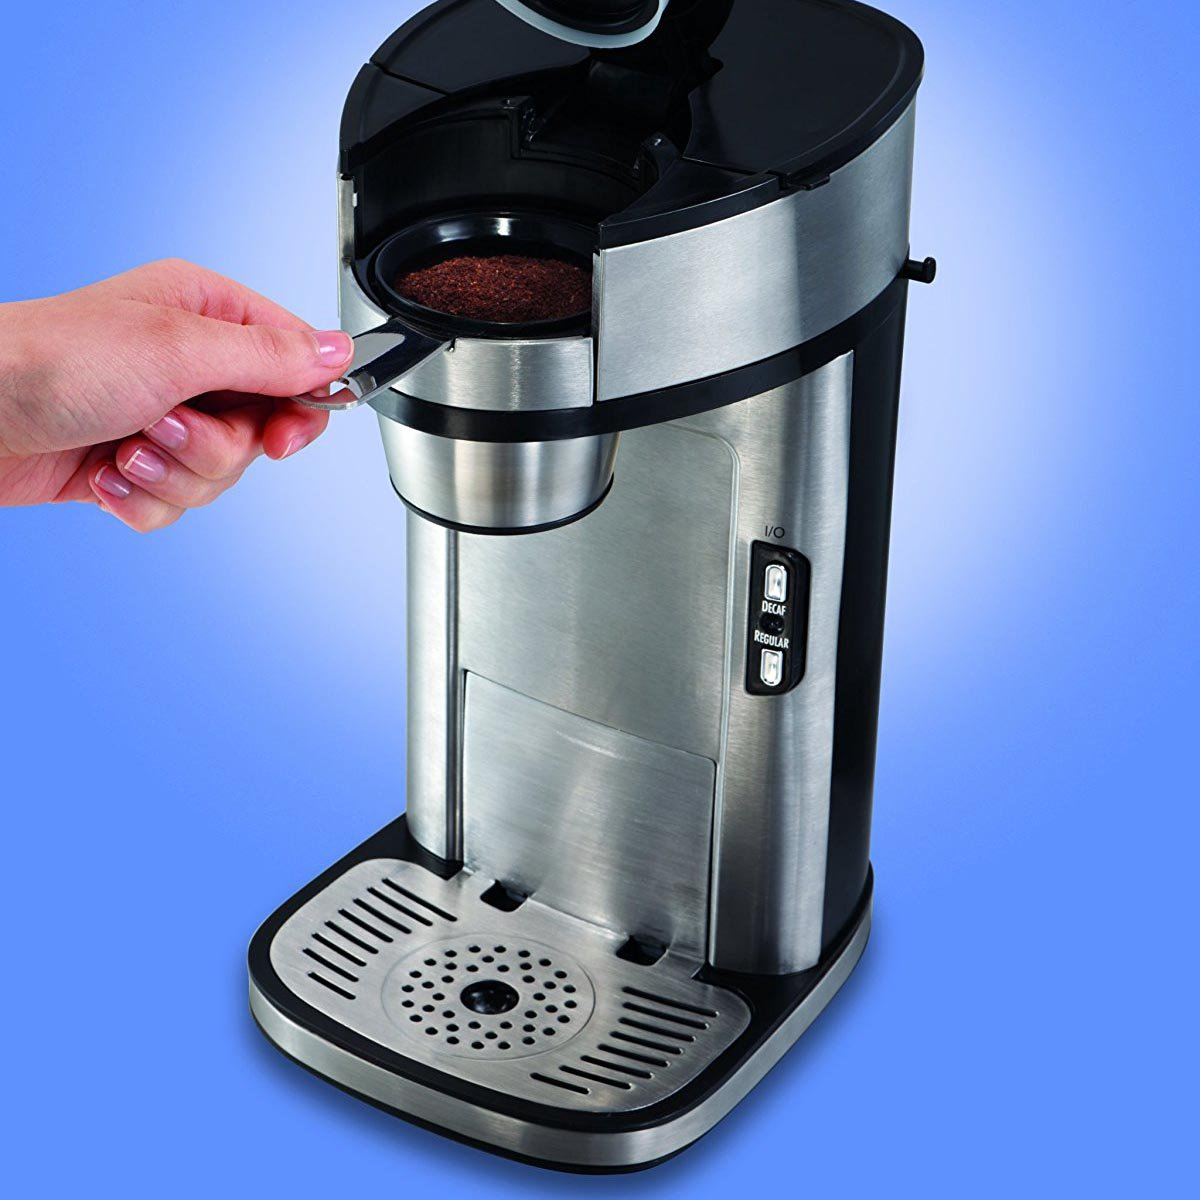 Coffee Maker With Metal Parts : Hamilton Beach The Scoop Single Serve Coffee Maker, Stainless Steel 49981 eBay